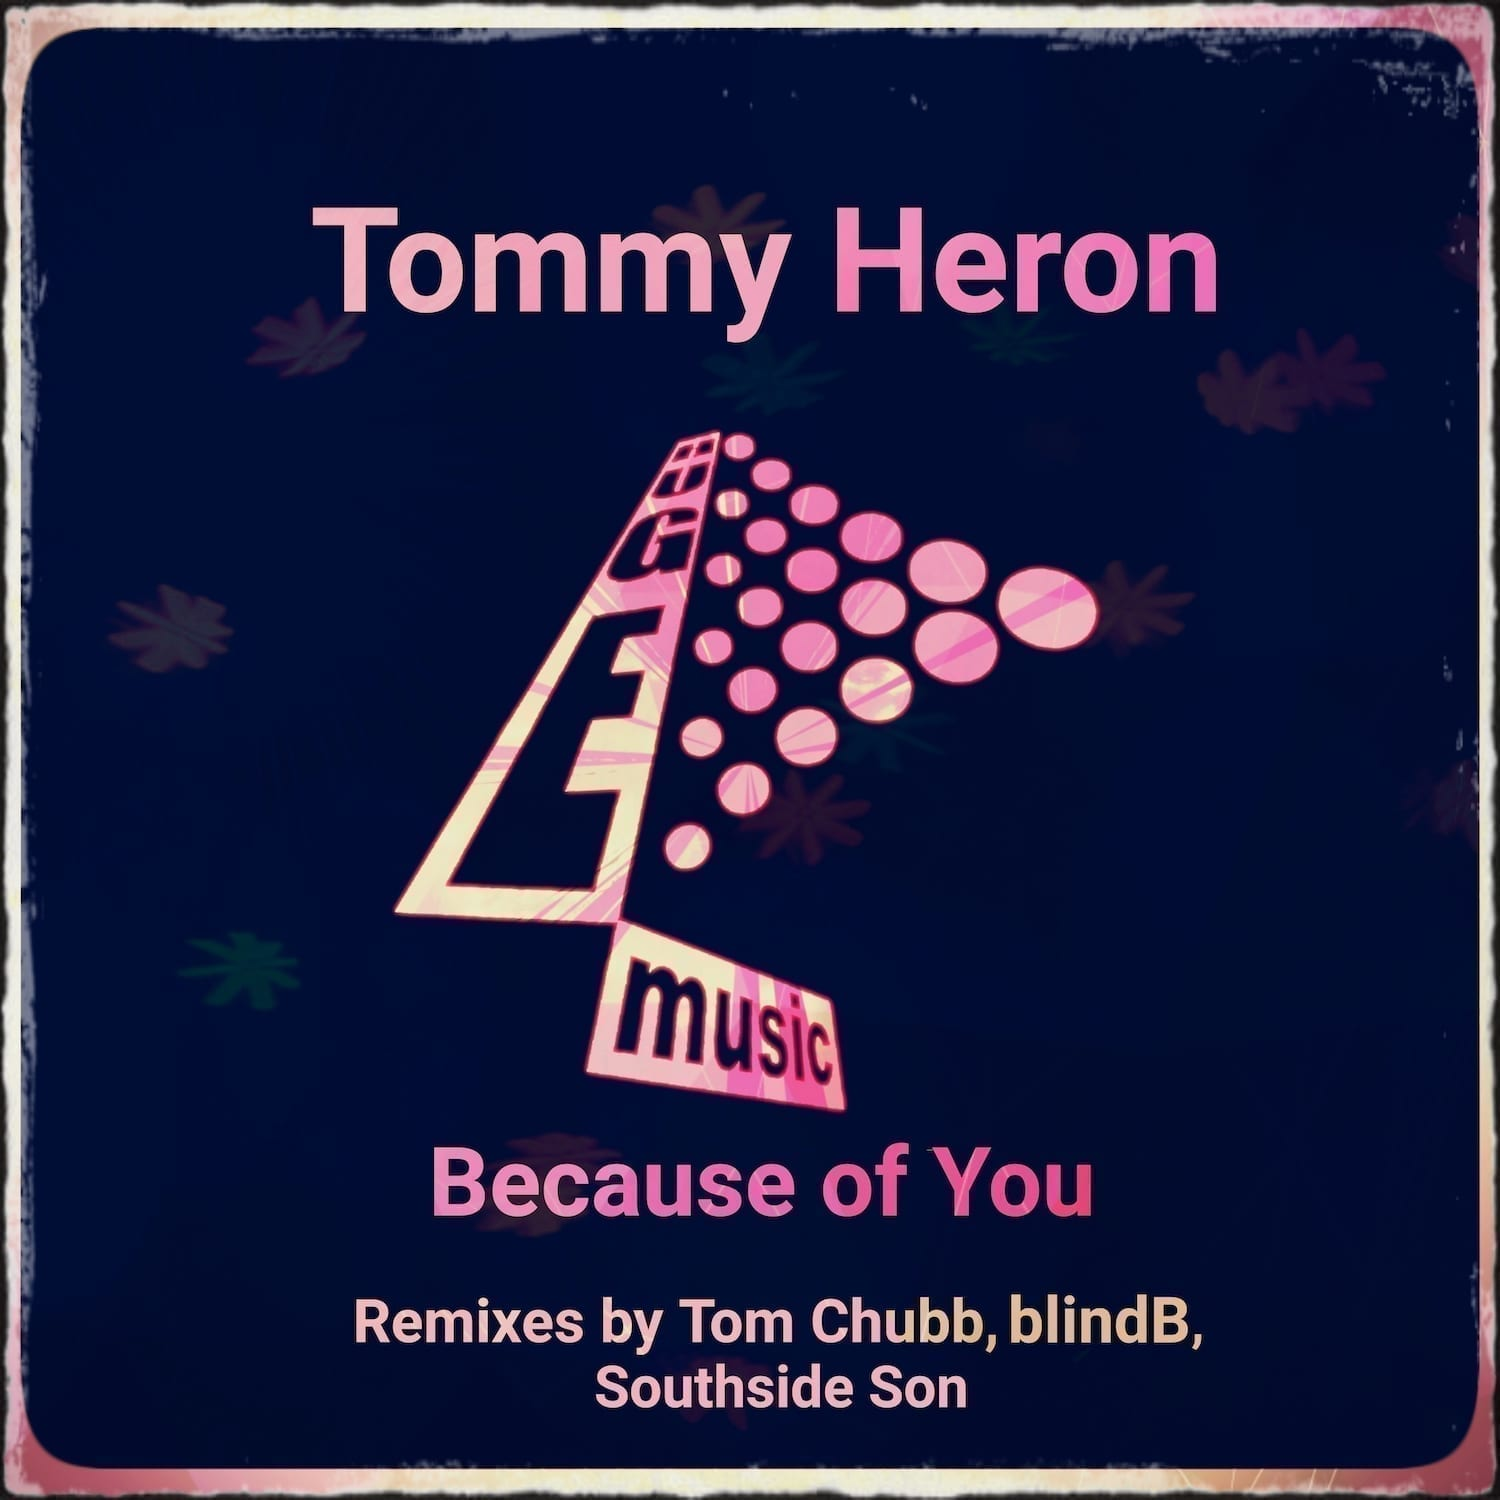 Tommy Heron 'Because of You' (incl. Tom Chubb, Southside Son and blindB Remixes) - Huge Music Records